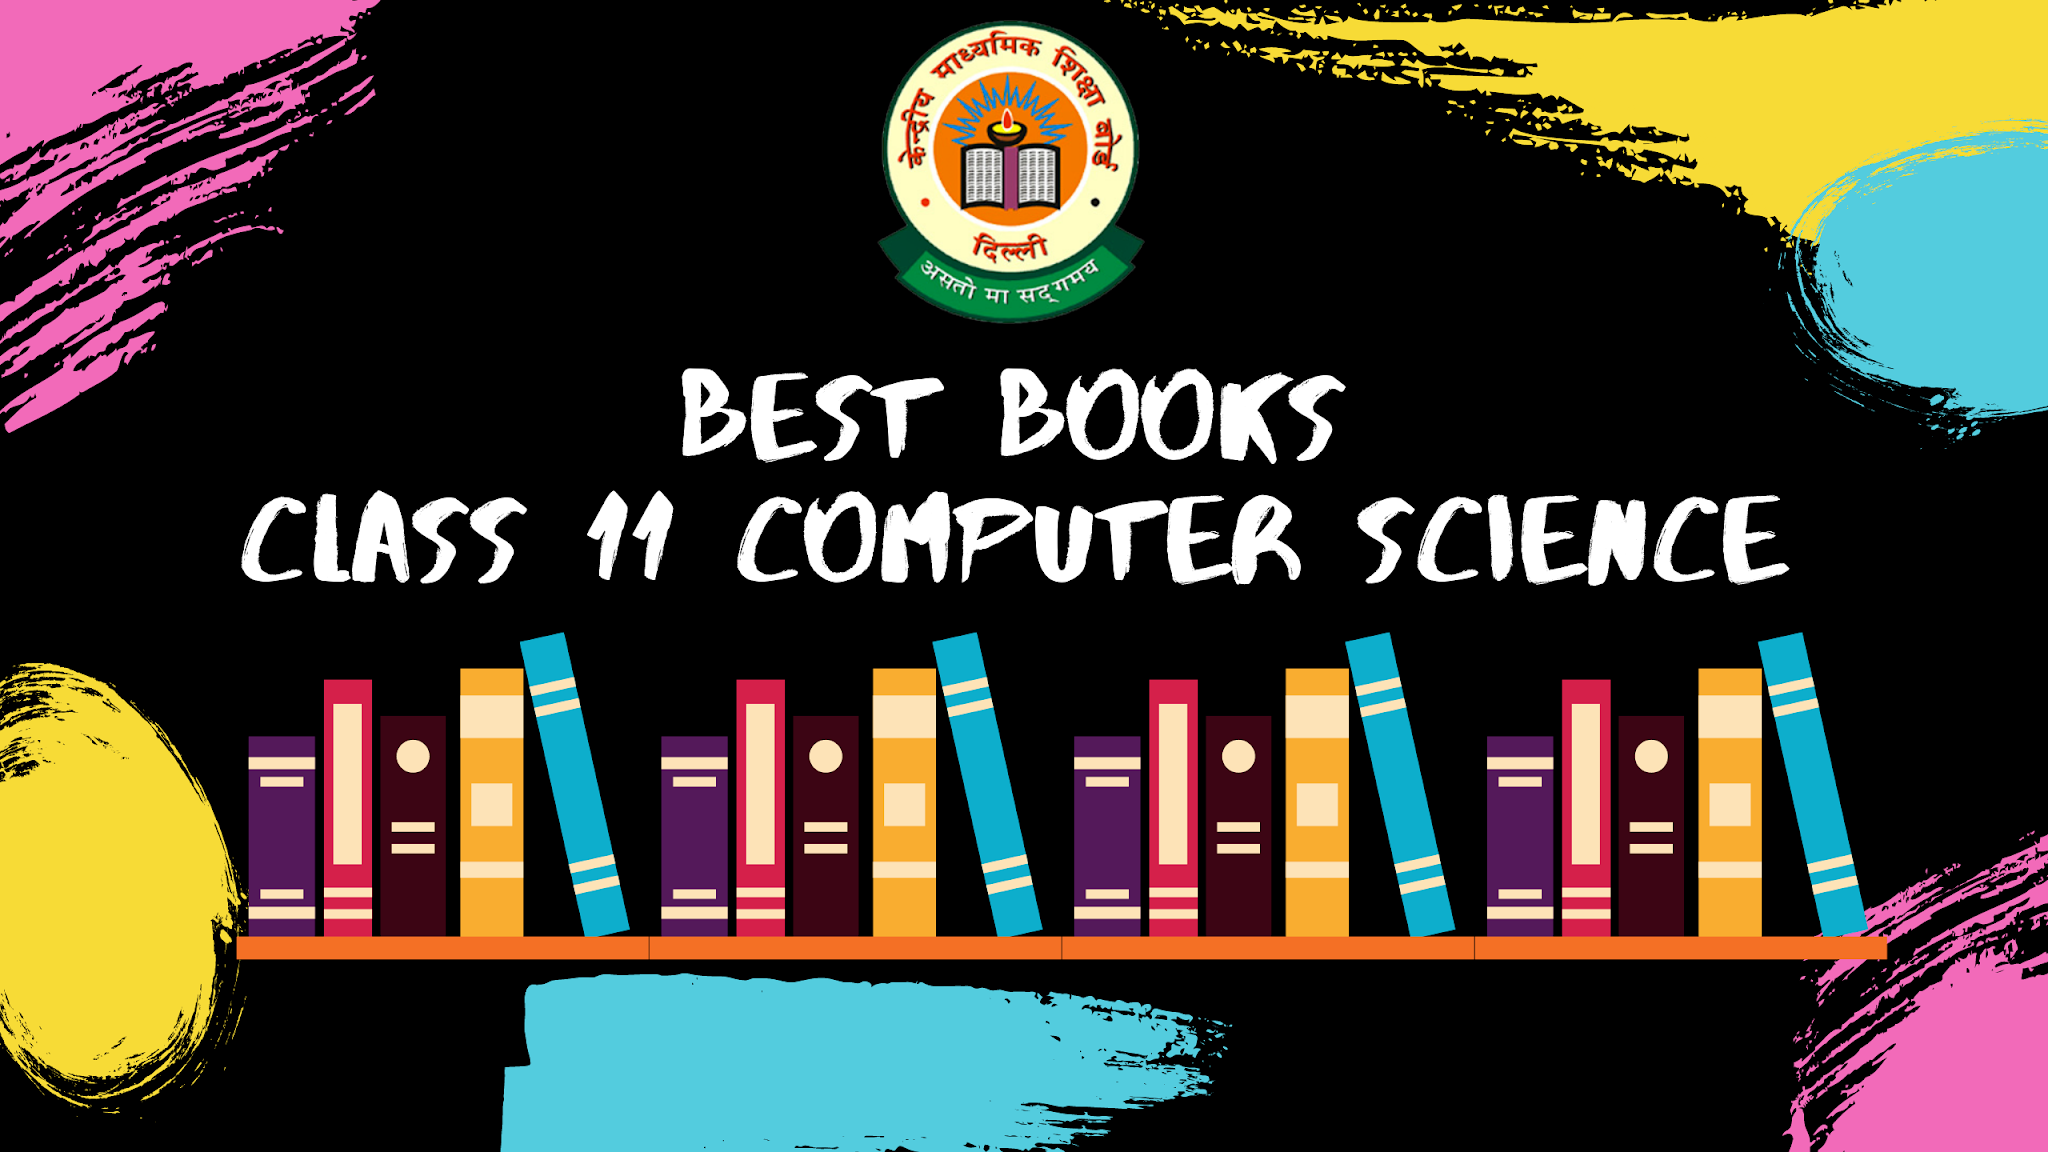 Best Books for Class 11 Computer Science (2020-21)